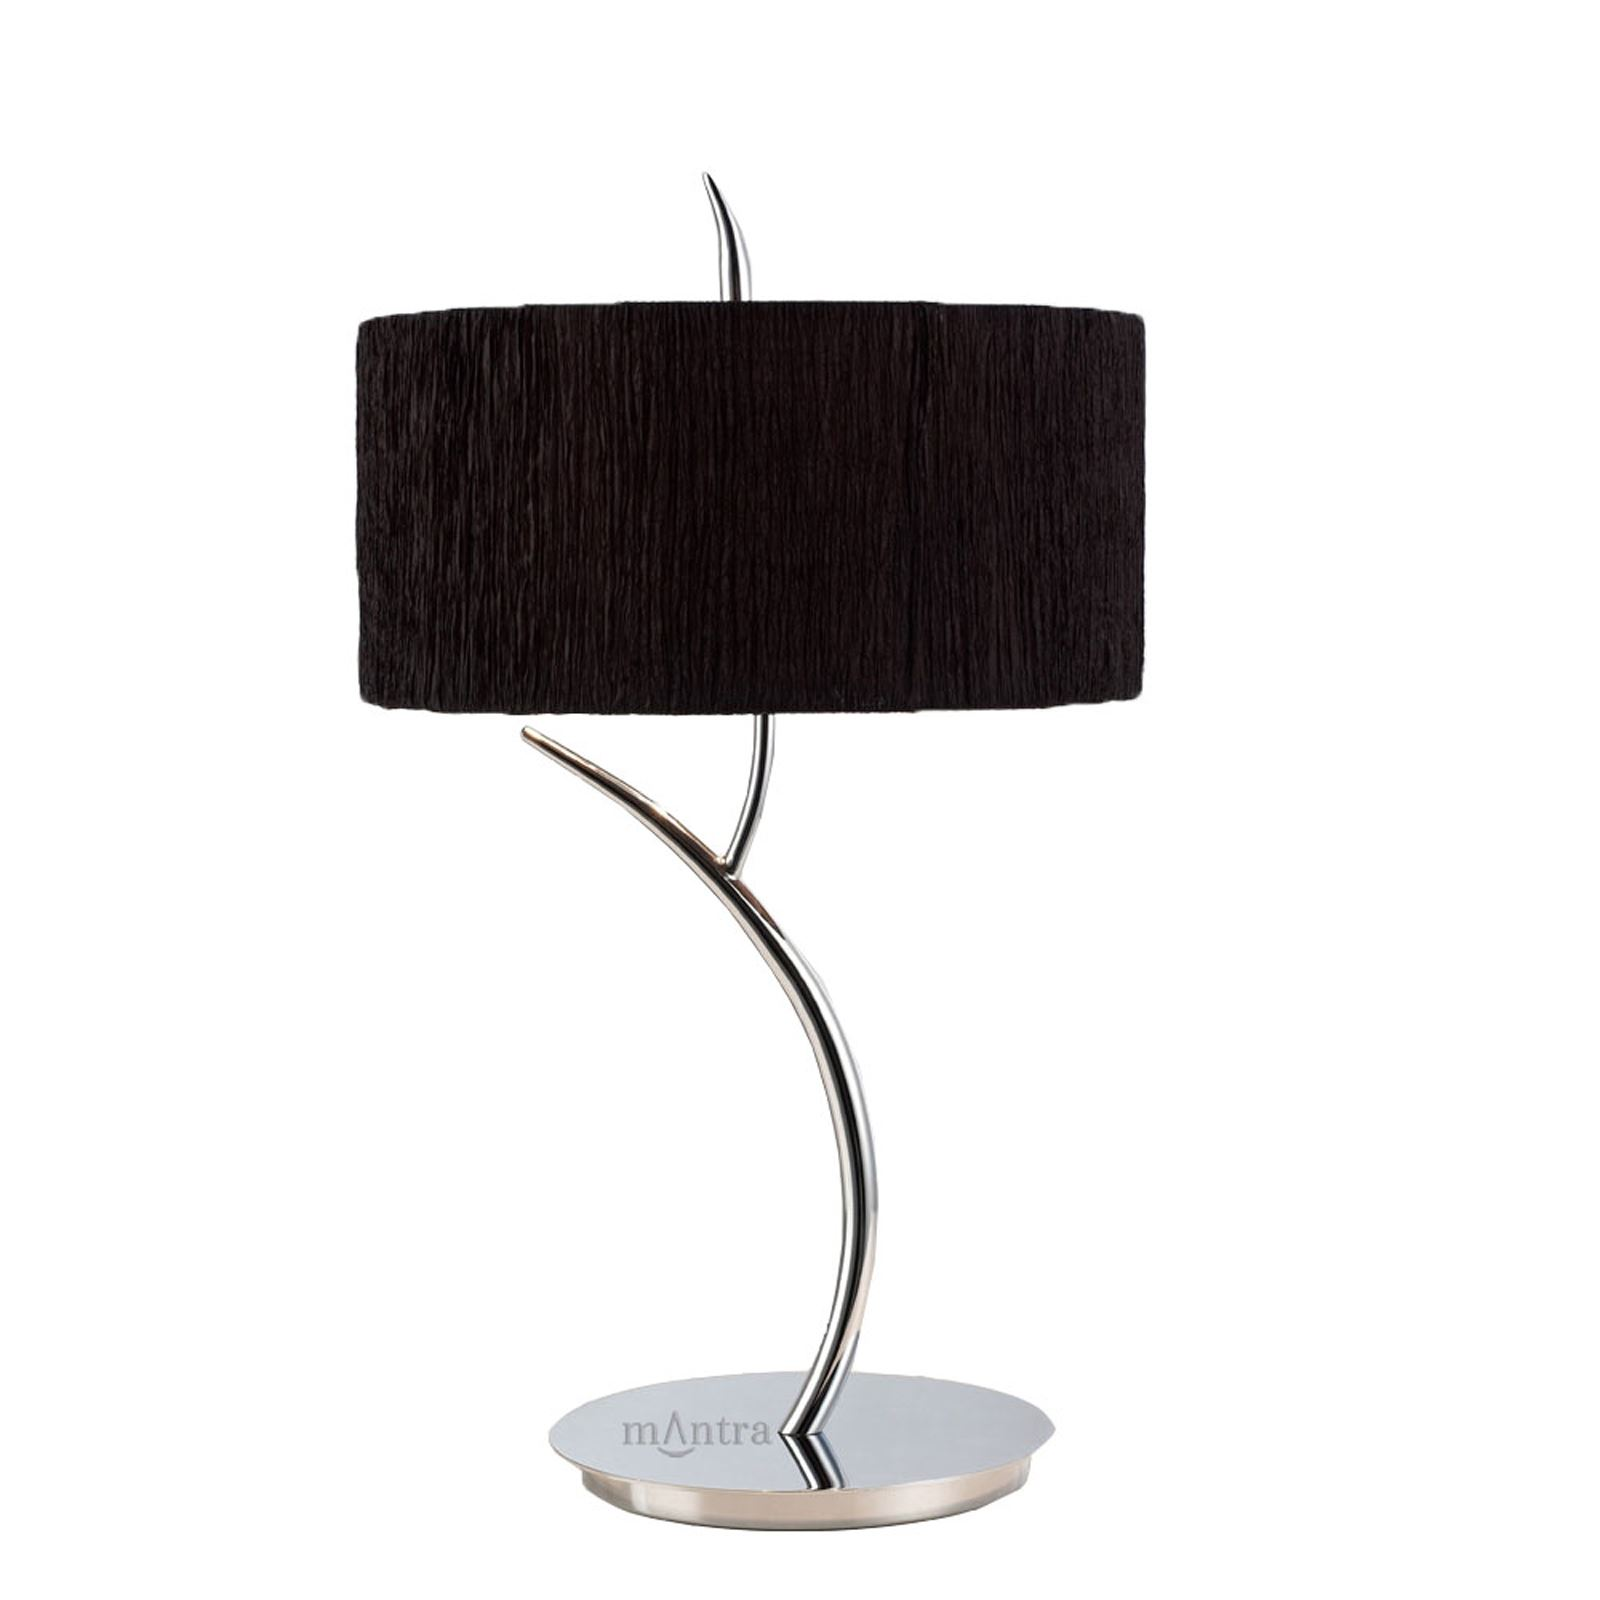 Stunning Bedside Table 2 Light Polished Chrome With Black Shade